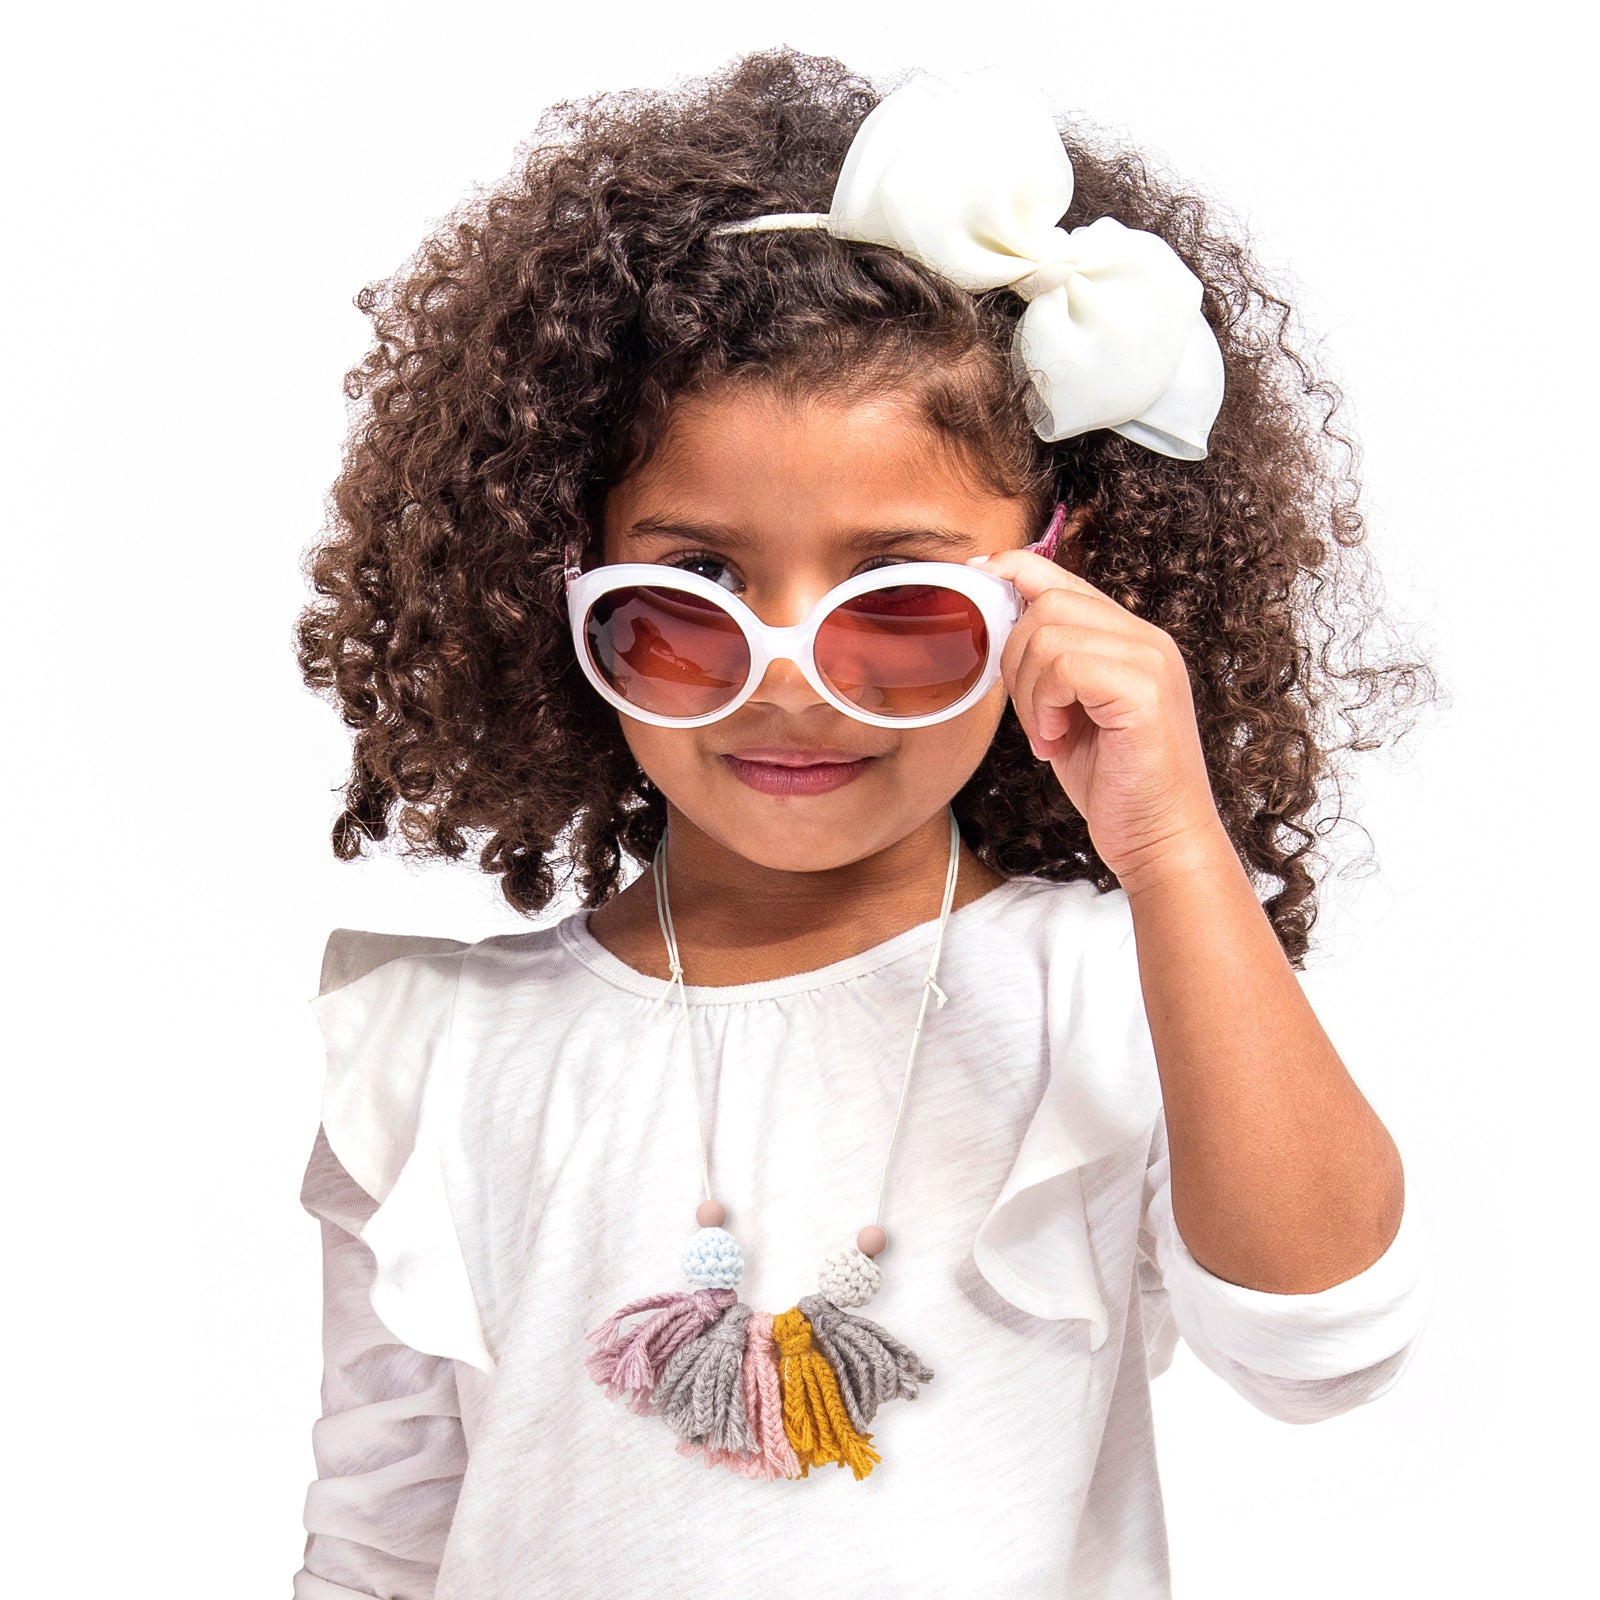 Kids Round 'O' Gloss sunglasses